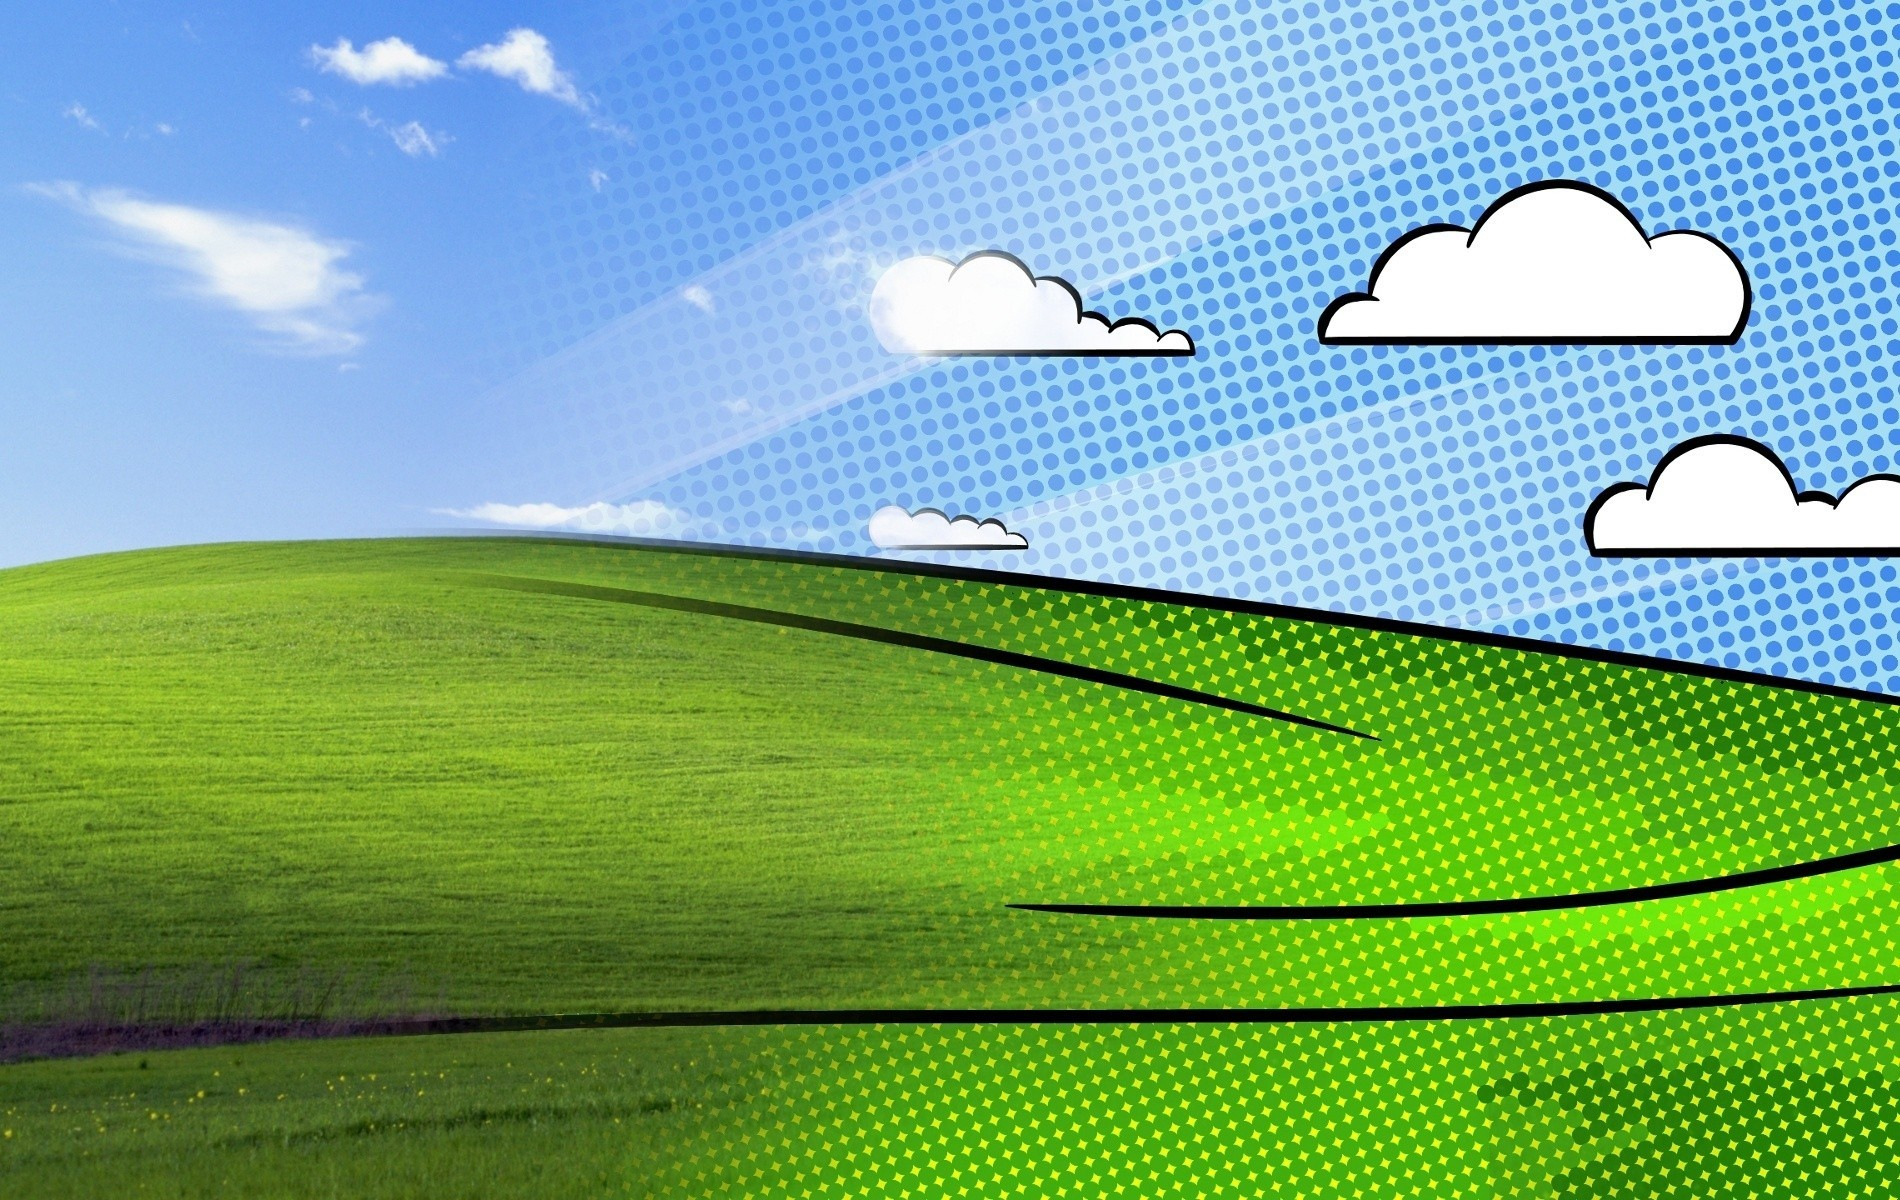 windows xp microsoft windows HD Wallpaper